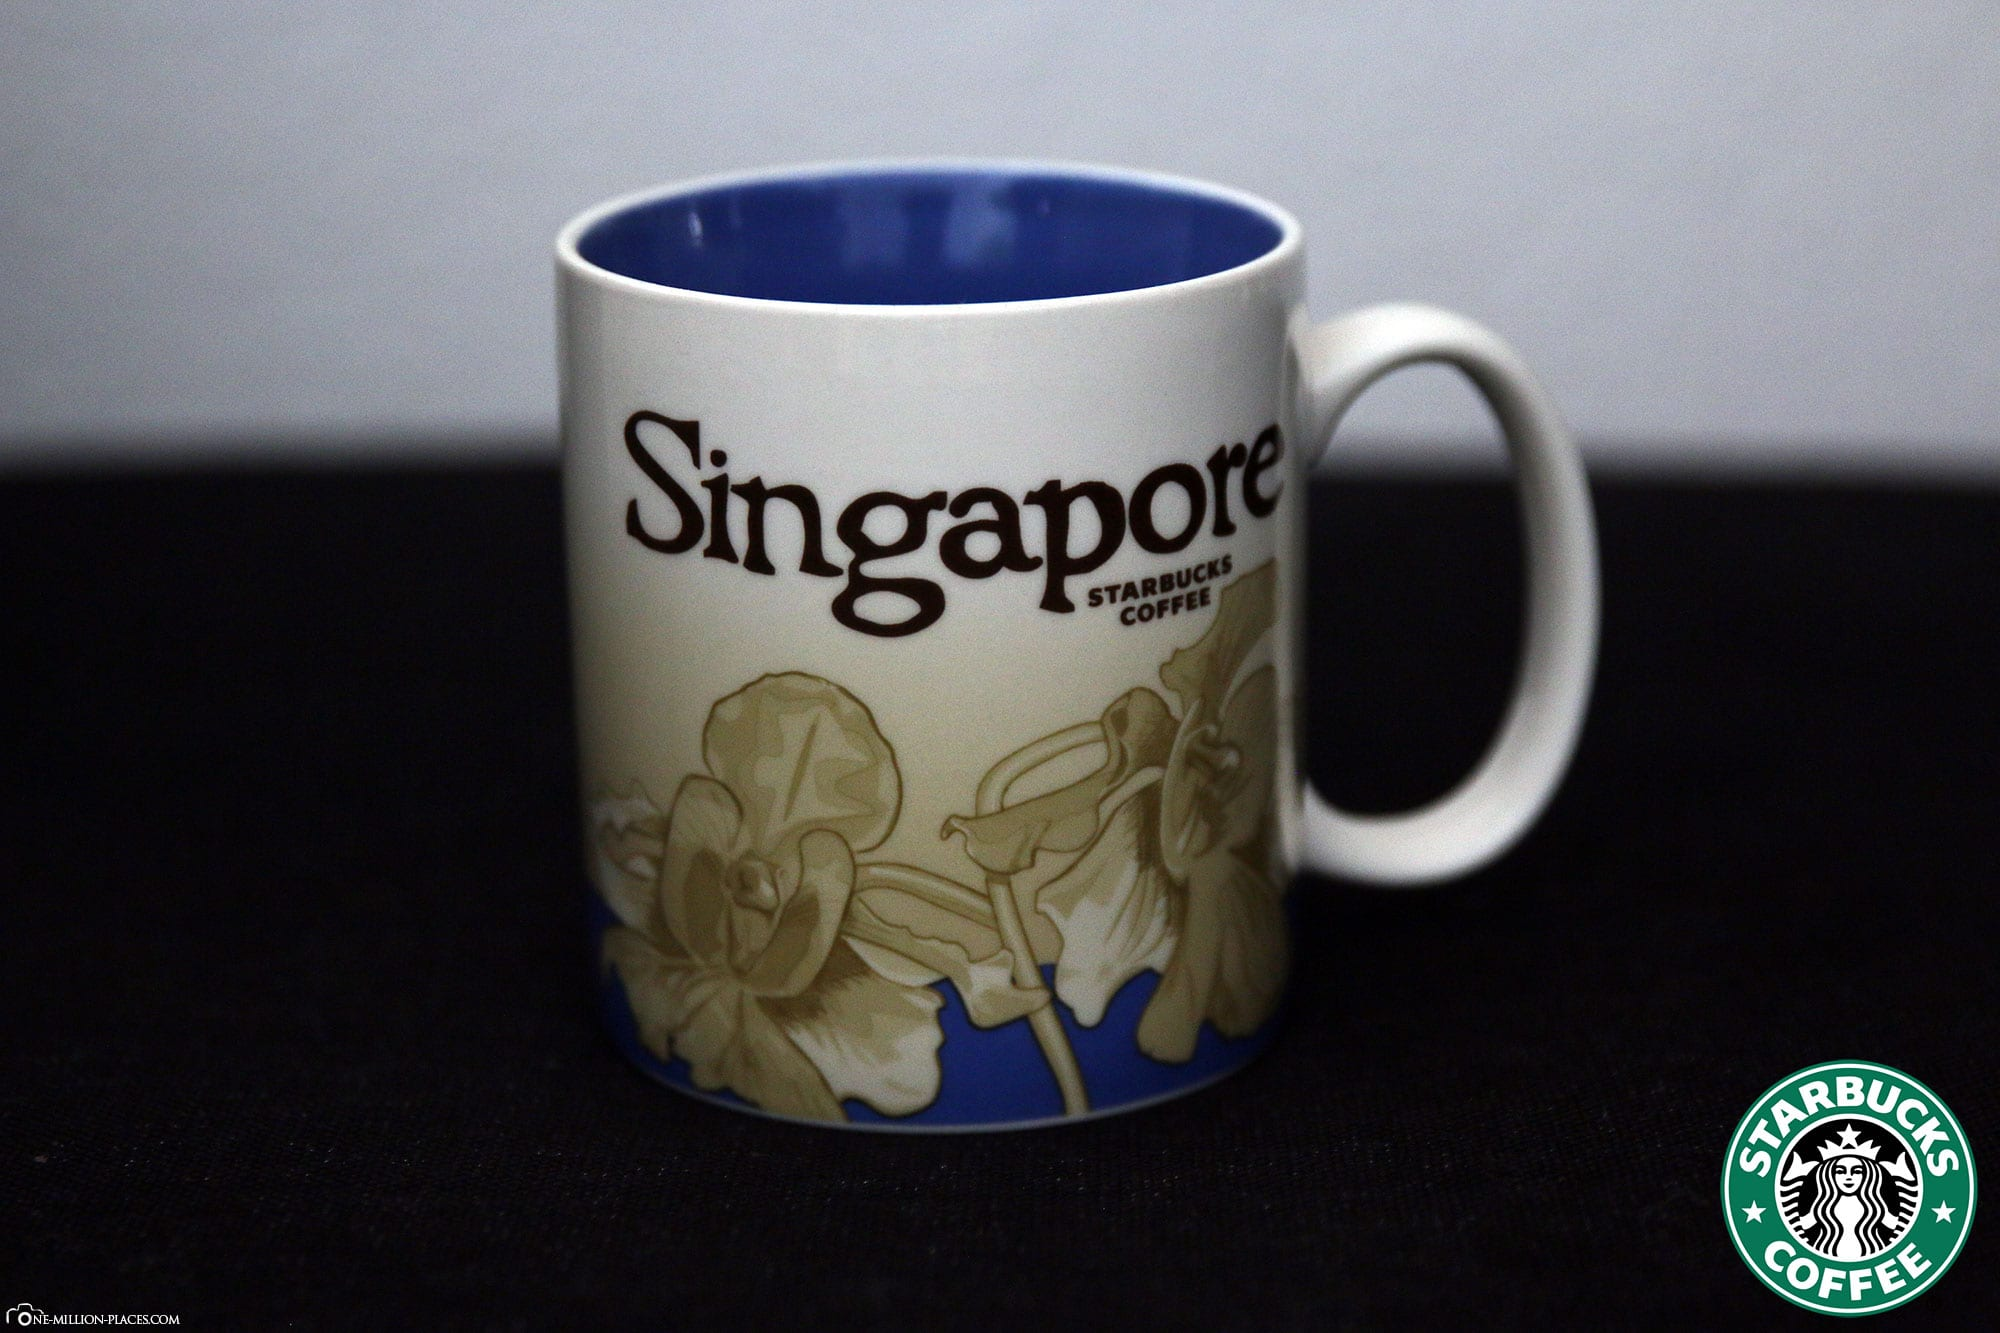 Singapur, Starbucks Tasse, Global Icon Serie, City Mugs, Sammlung, Reisebericht